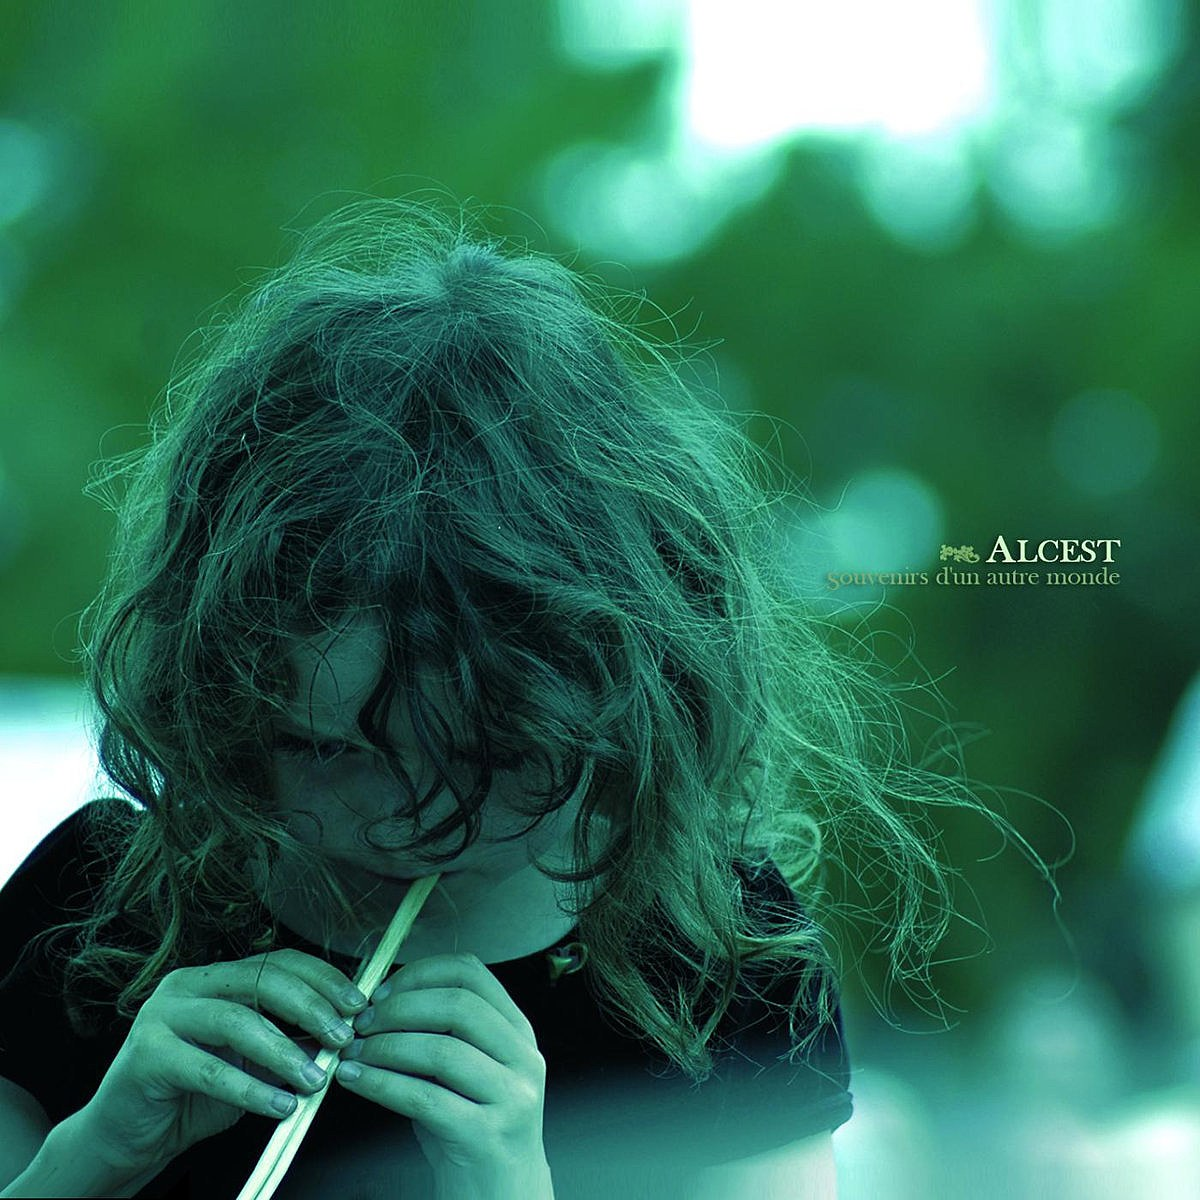 Review for Alcest - Souvenirs d'un Autre Monde